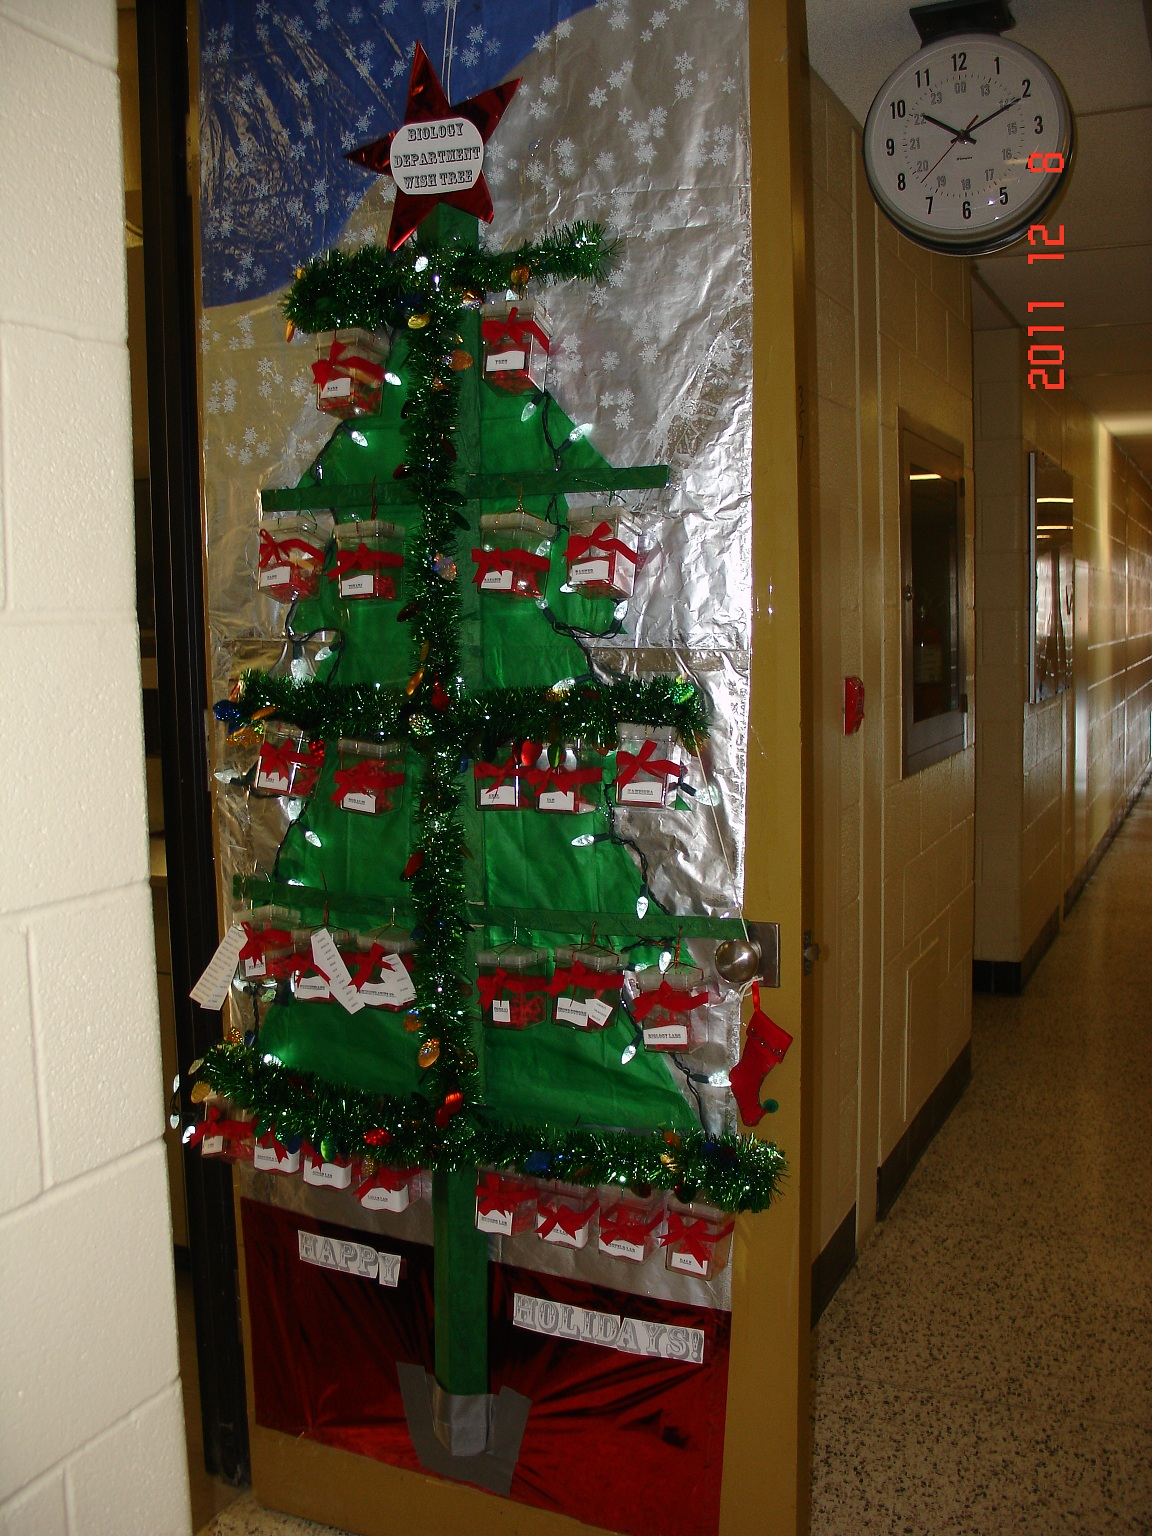 Christmas Decorating Ideas For Office Door : Uw biology graduate student association christmas door